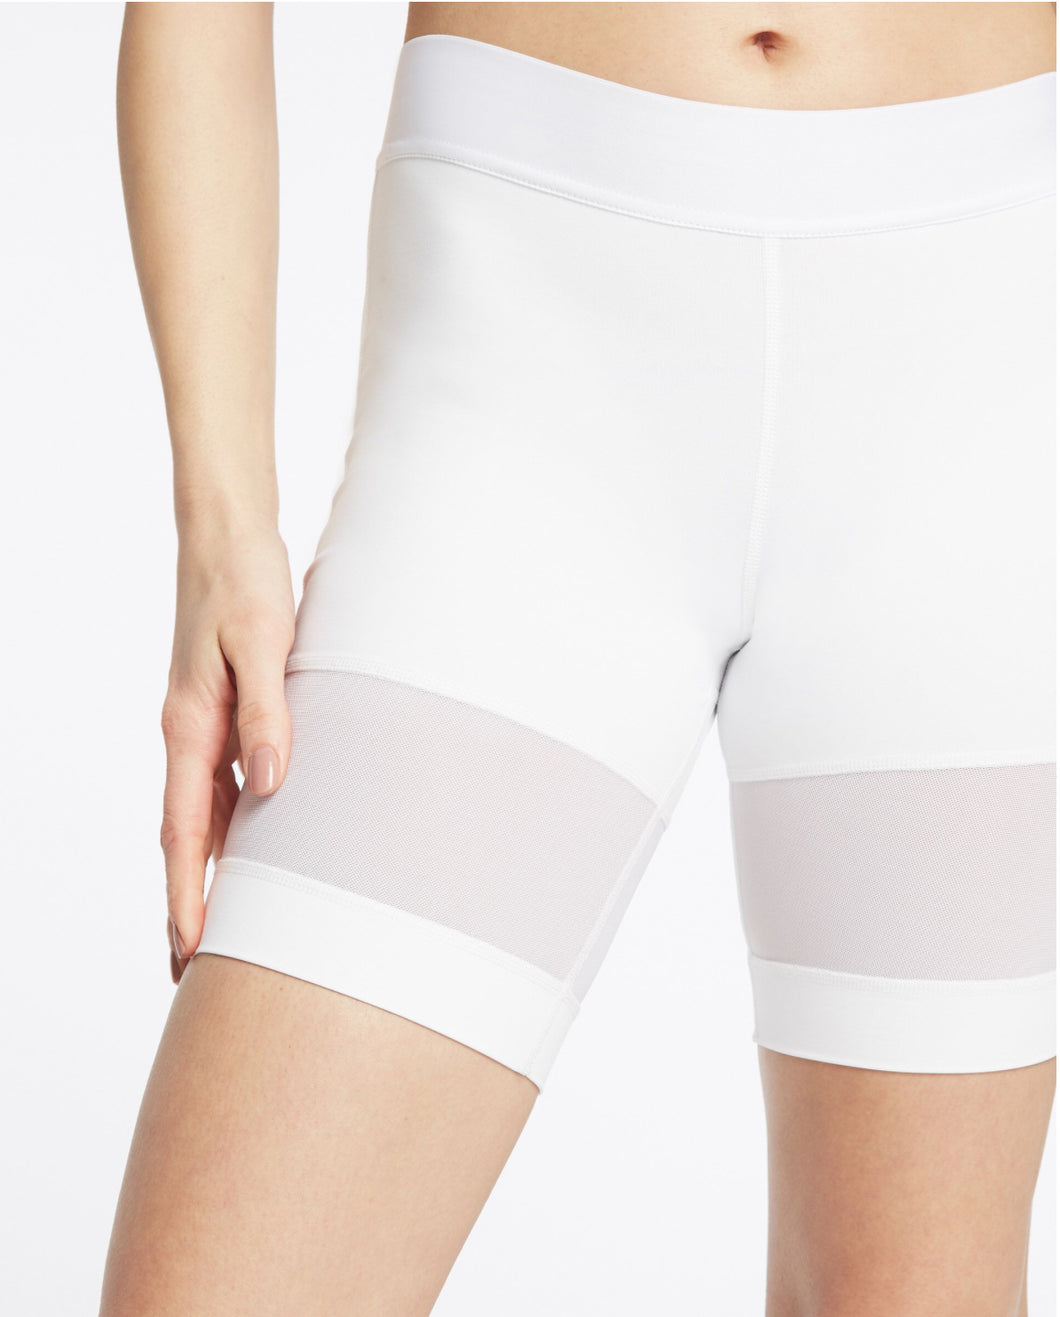 Kinetic Short- White